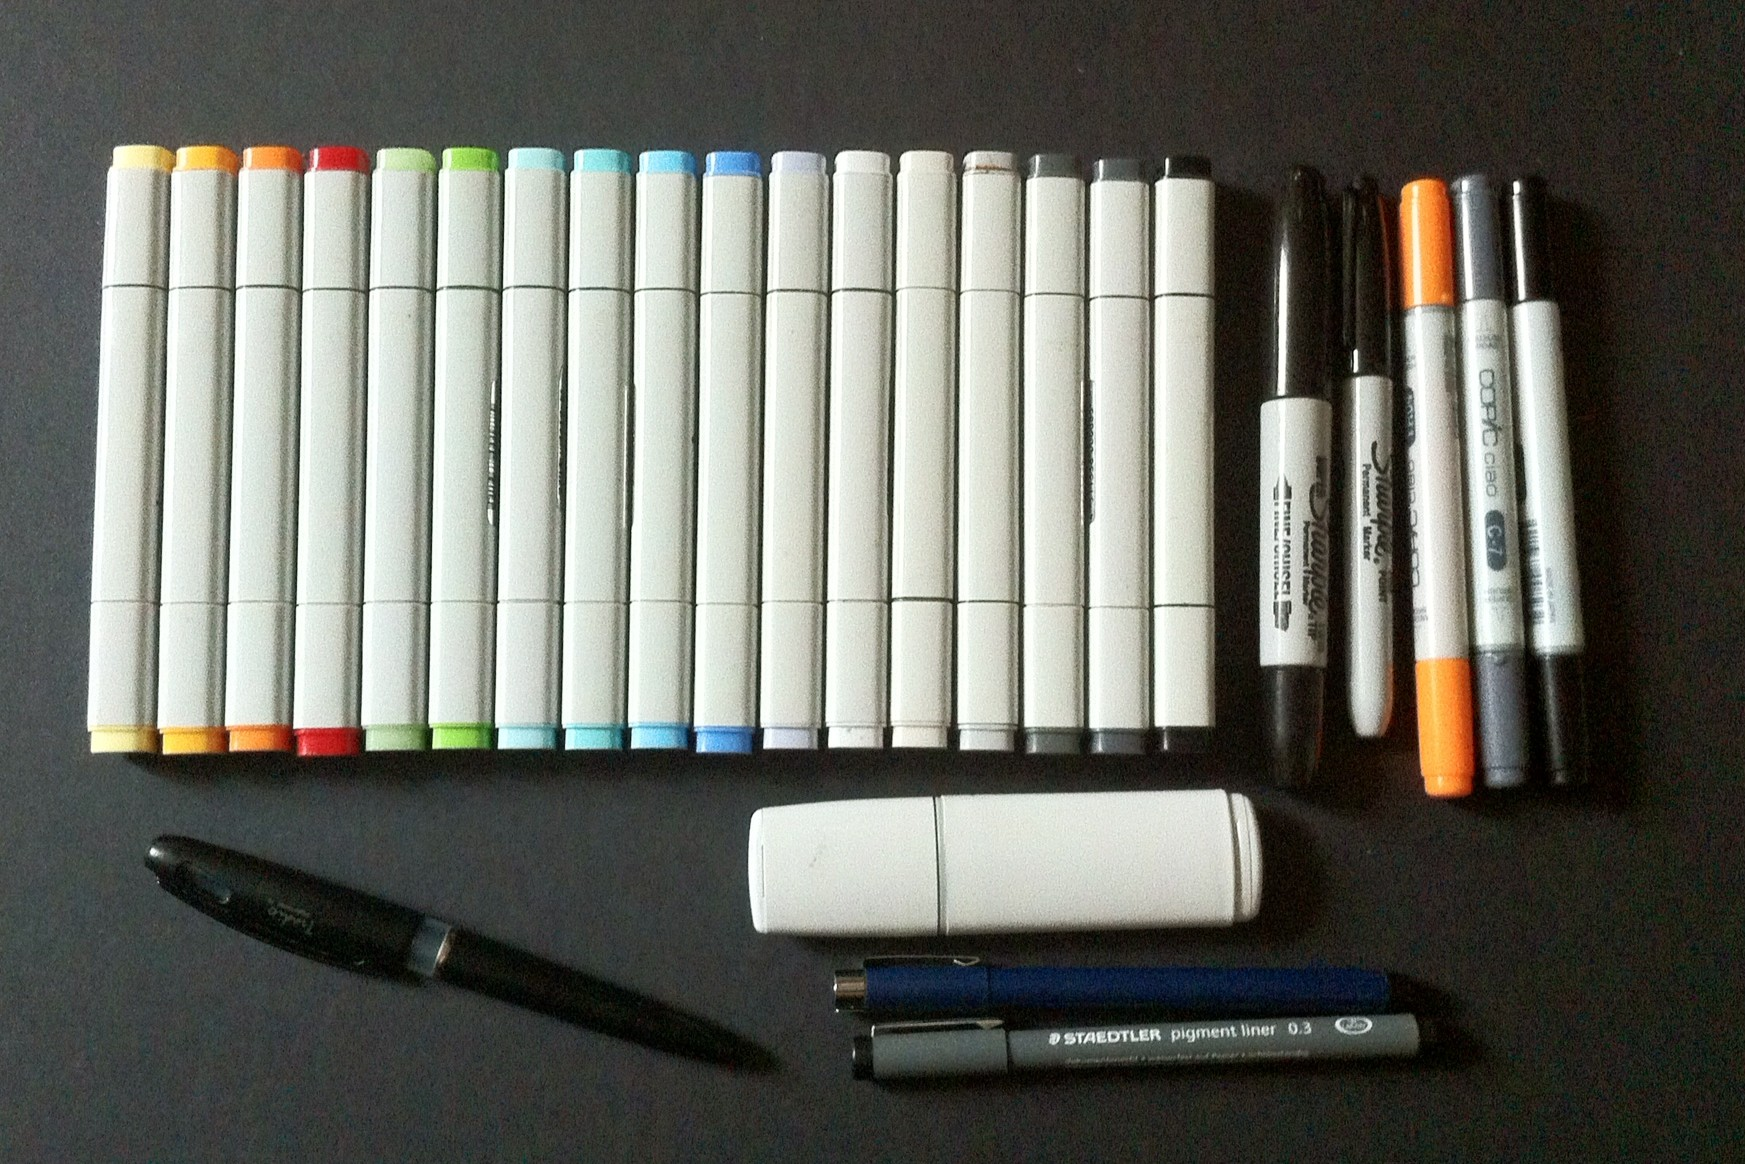 My favorite pens + markers  … together we make ideas visible